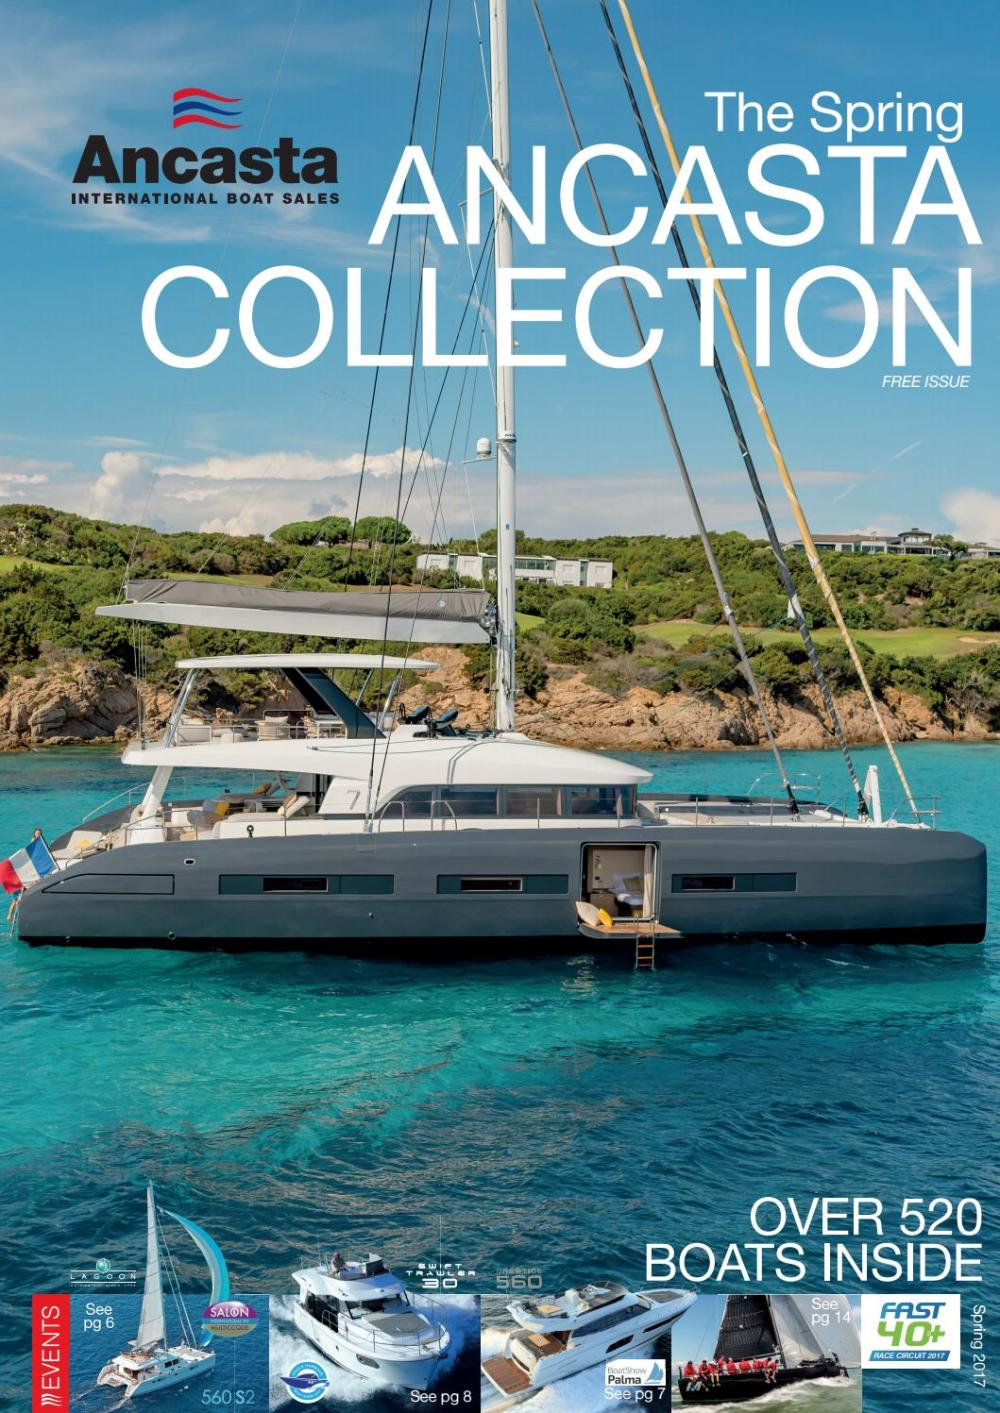 medium resolution of 17 ancasta spring collection issuu by ancasta international boat sales issuu